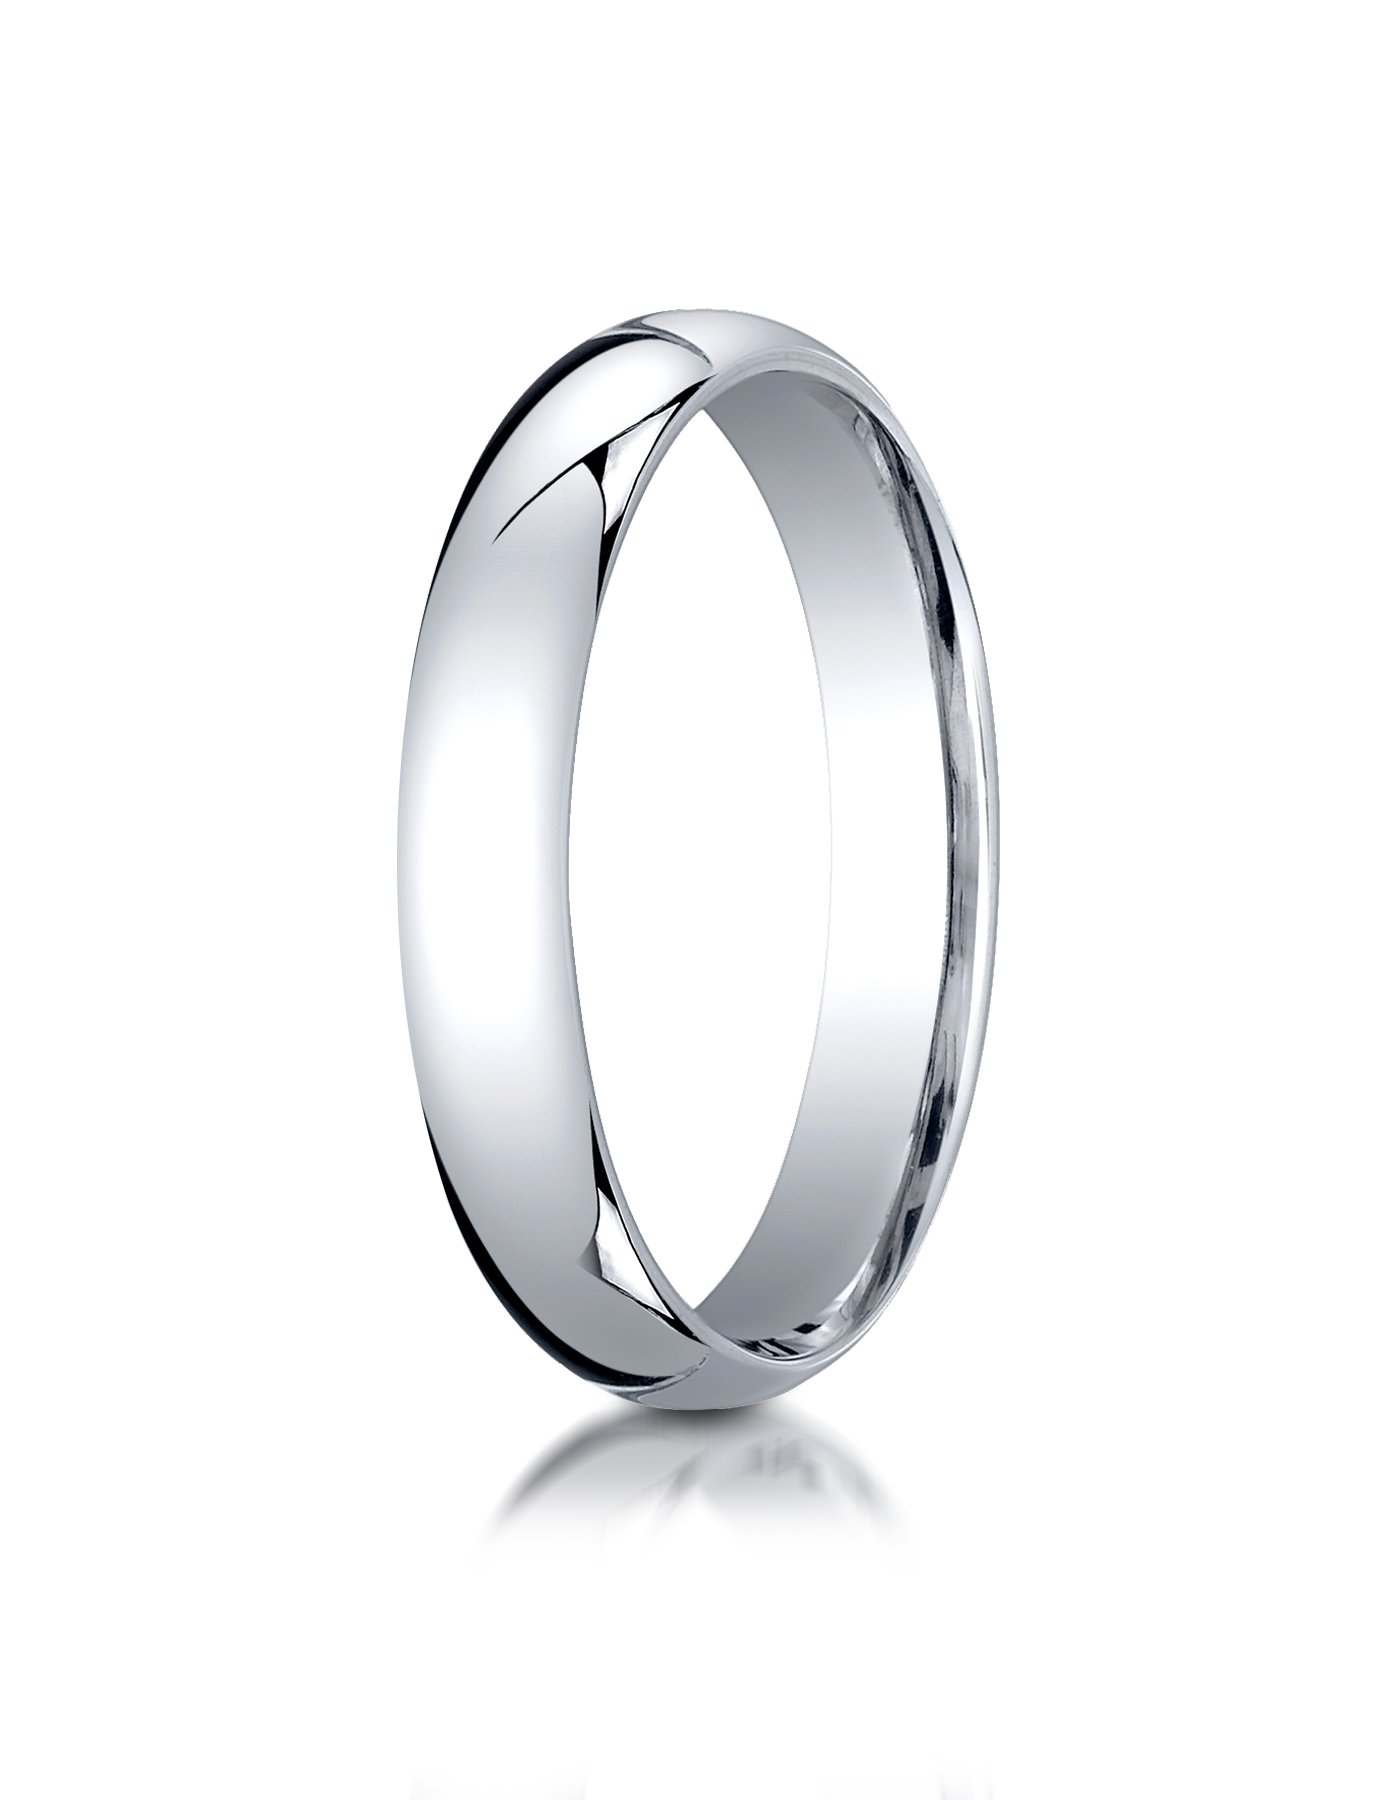 Men's 14K White Gold 4mm Slim Profile Comfort Fit Wedding Band Ring, Size 4.5 by Aetonal